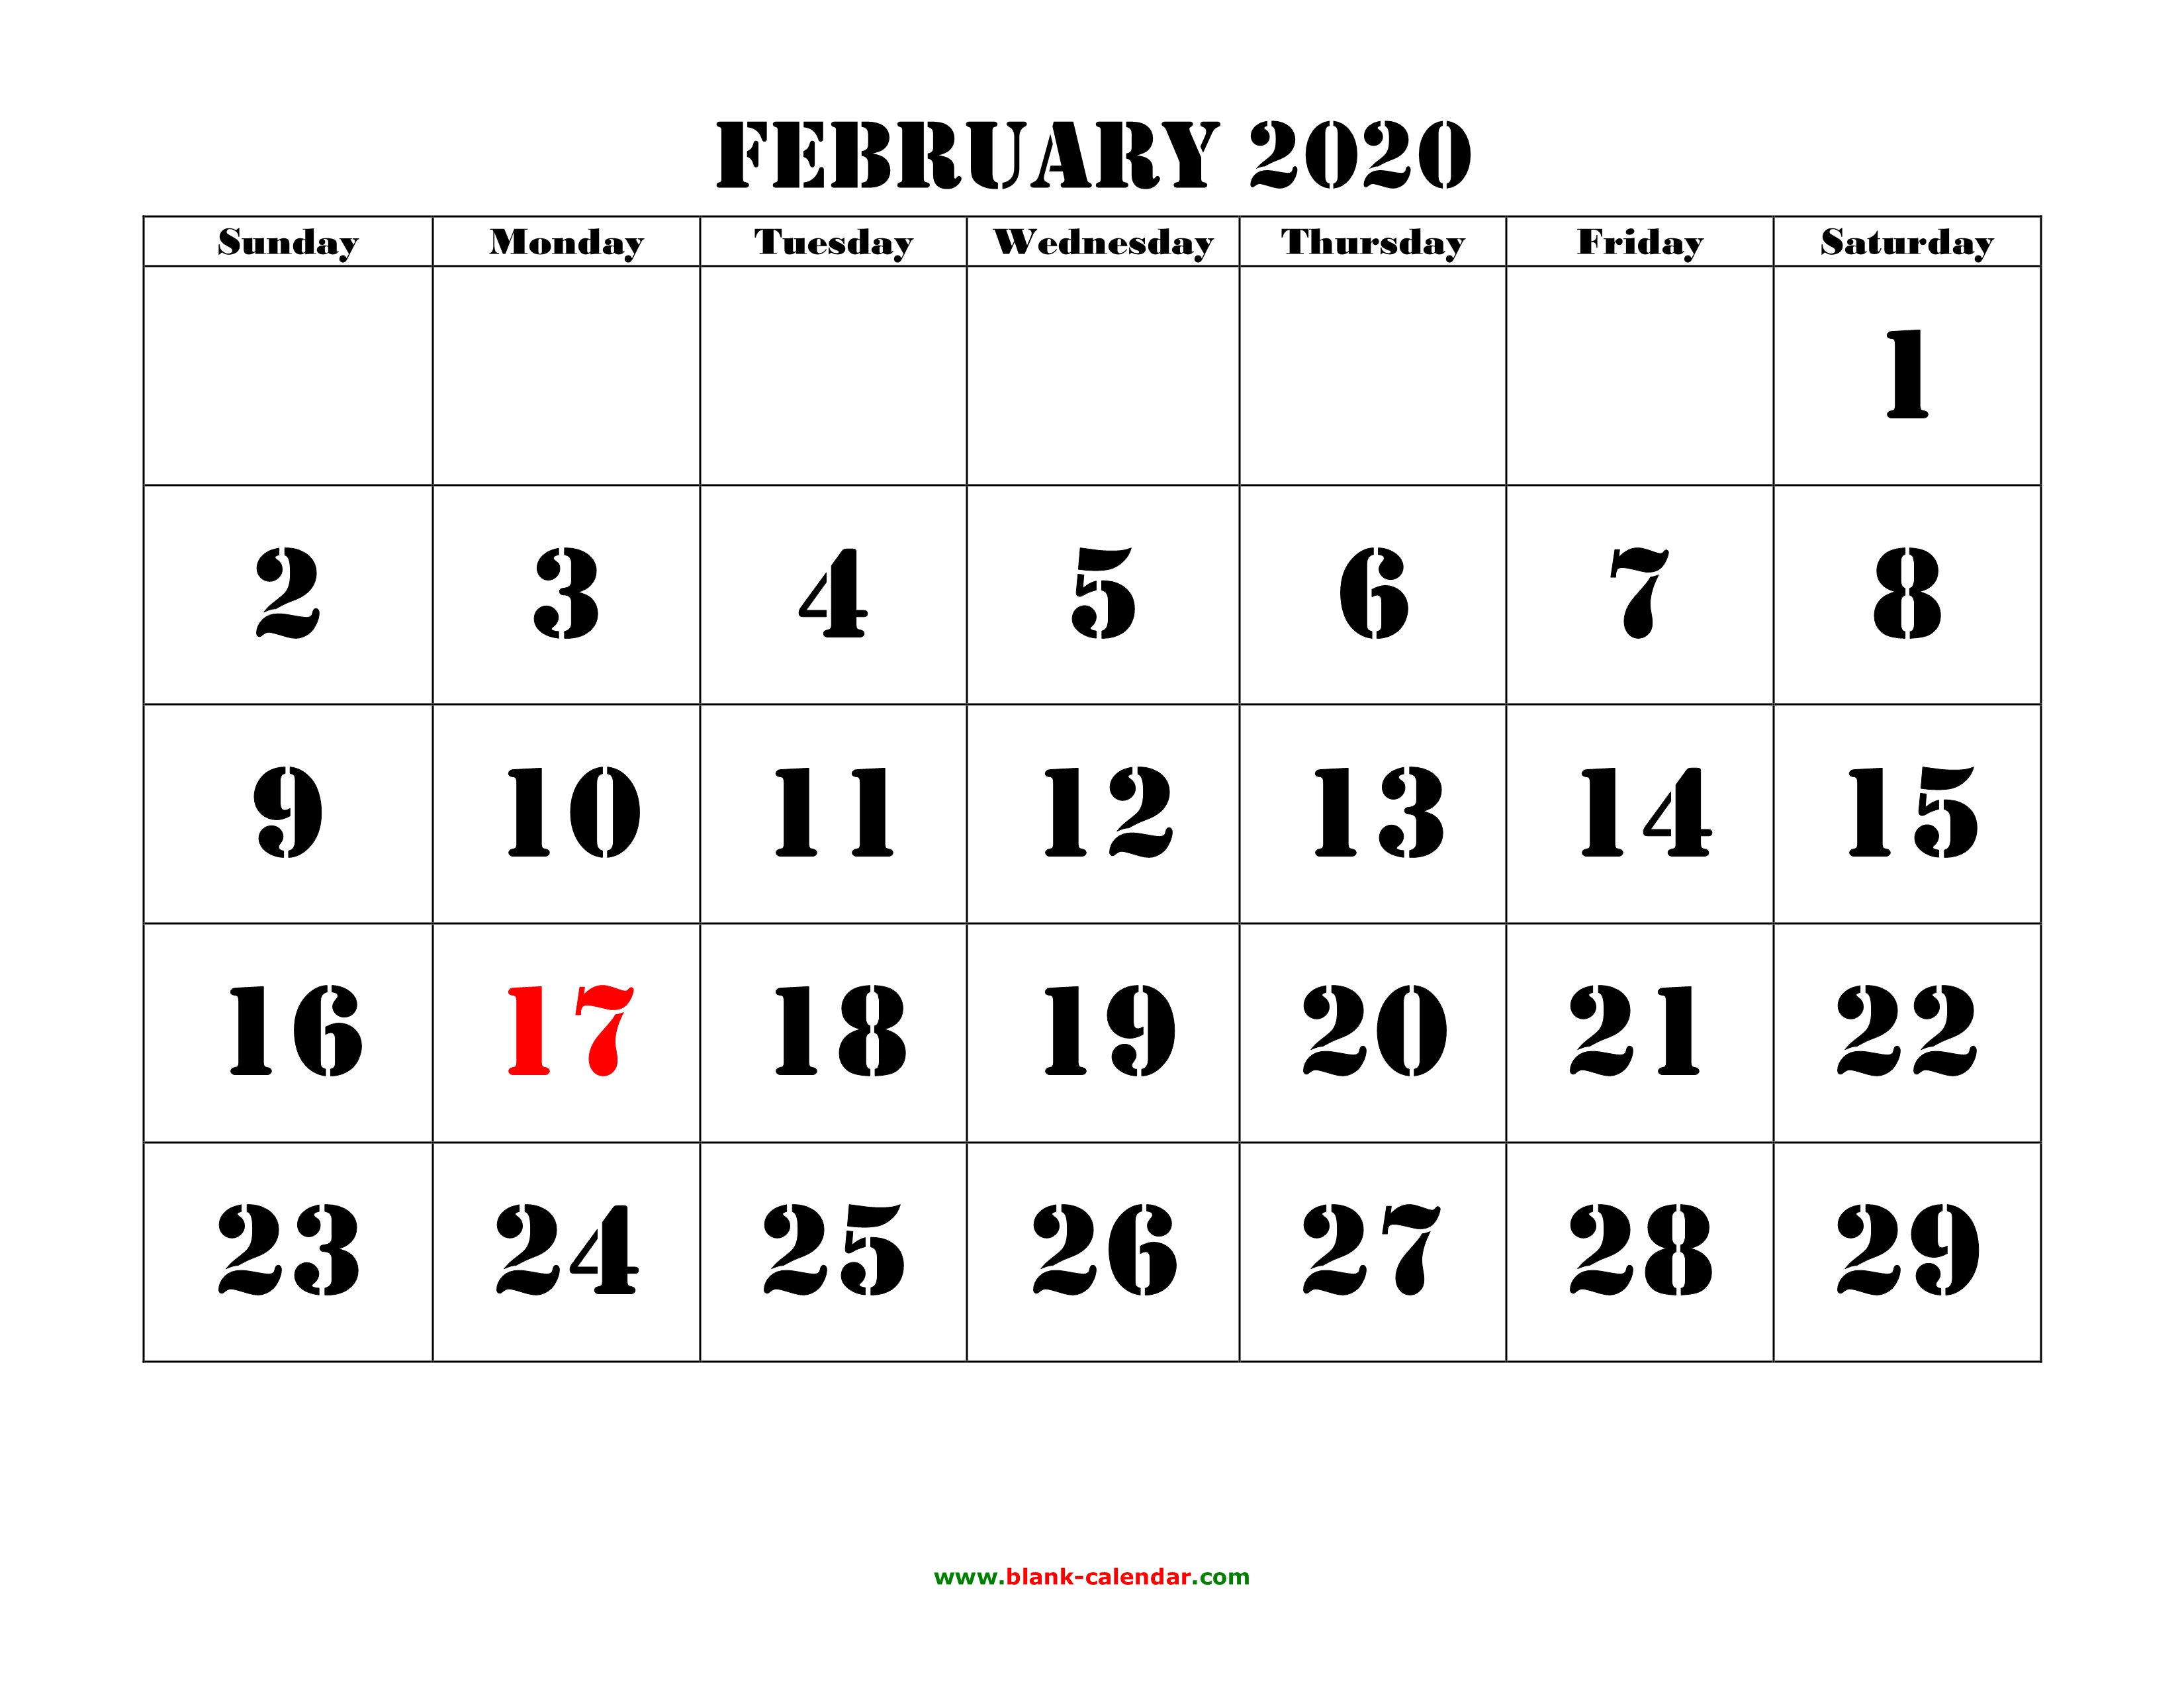 photo relating to Printable Calendar Feb. identified as February 2020 Printable Calendar Cost-free Down load Regular